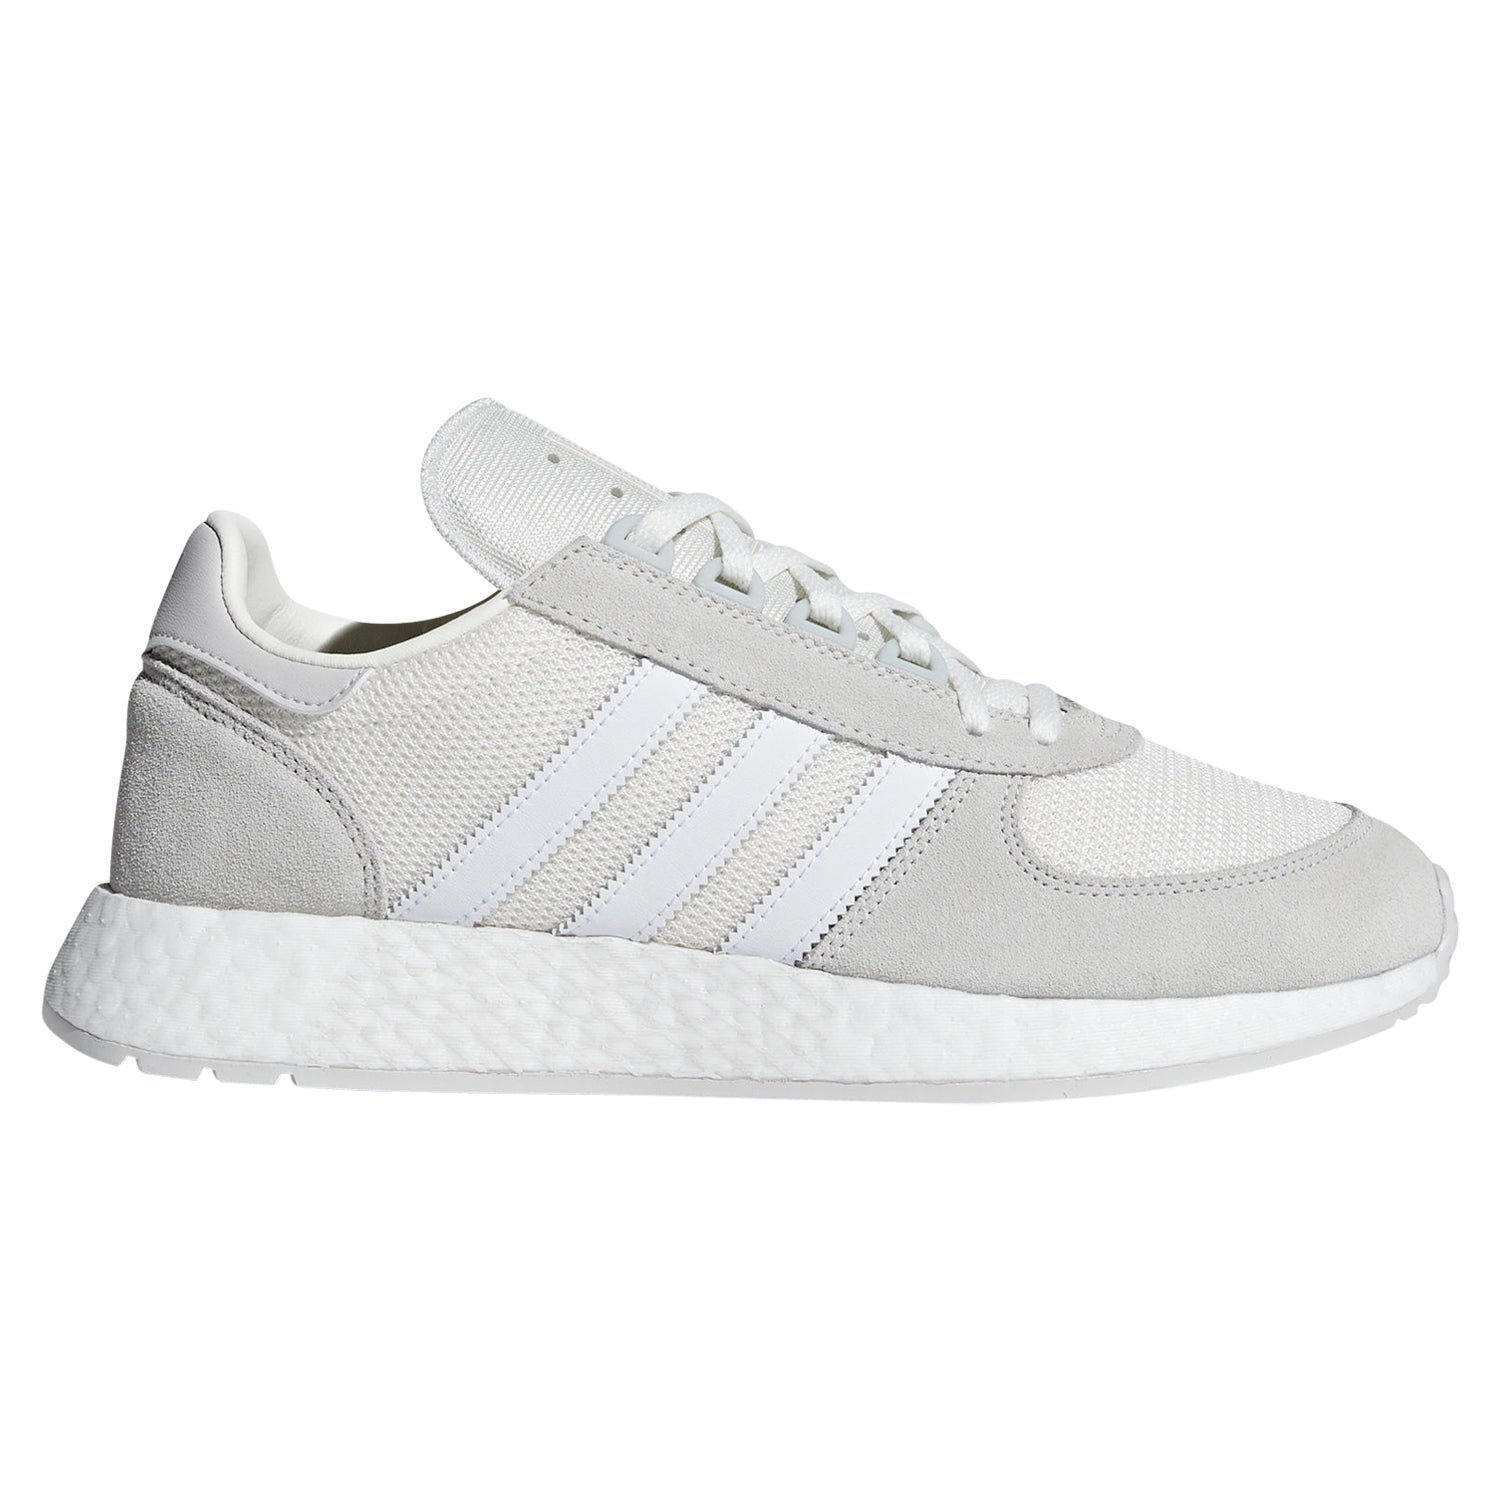 adidas Originals Men's Marathon x 5923 Trainers White